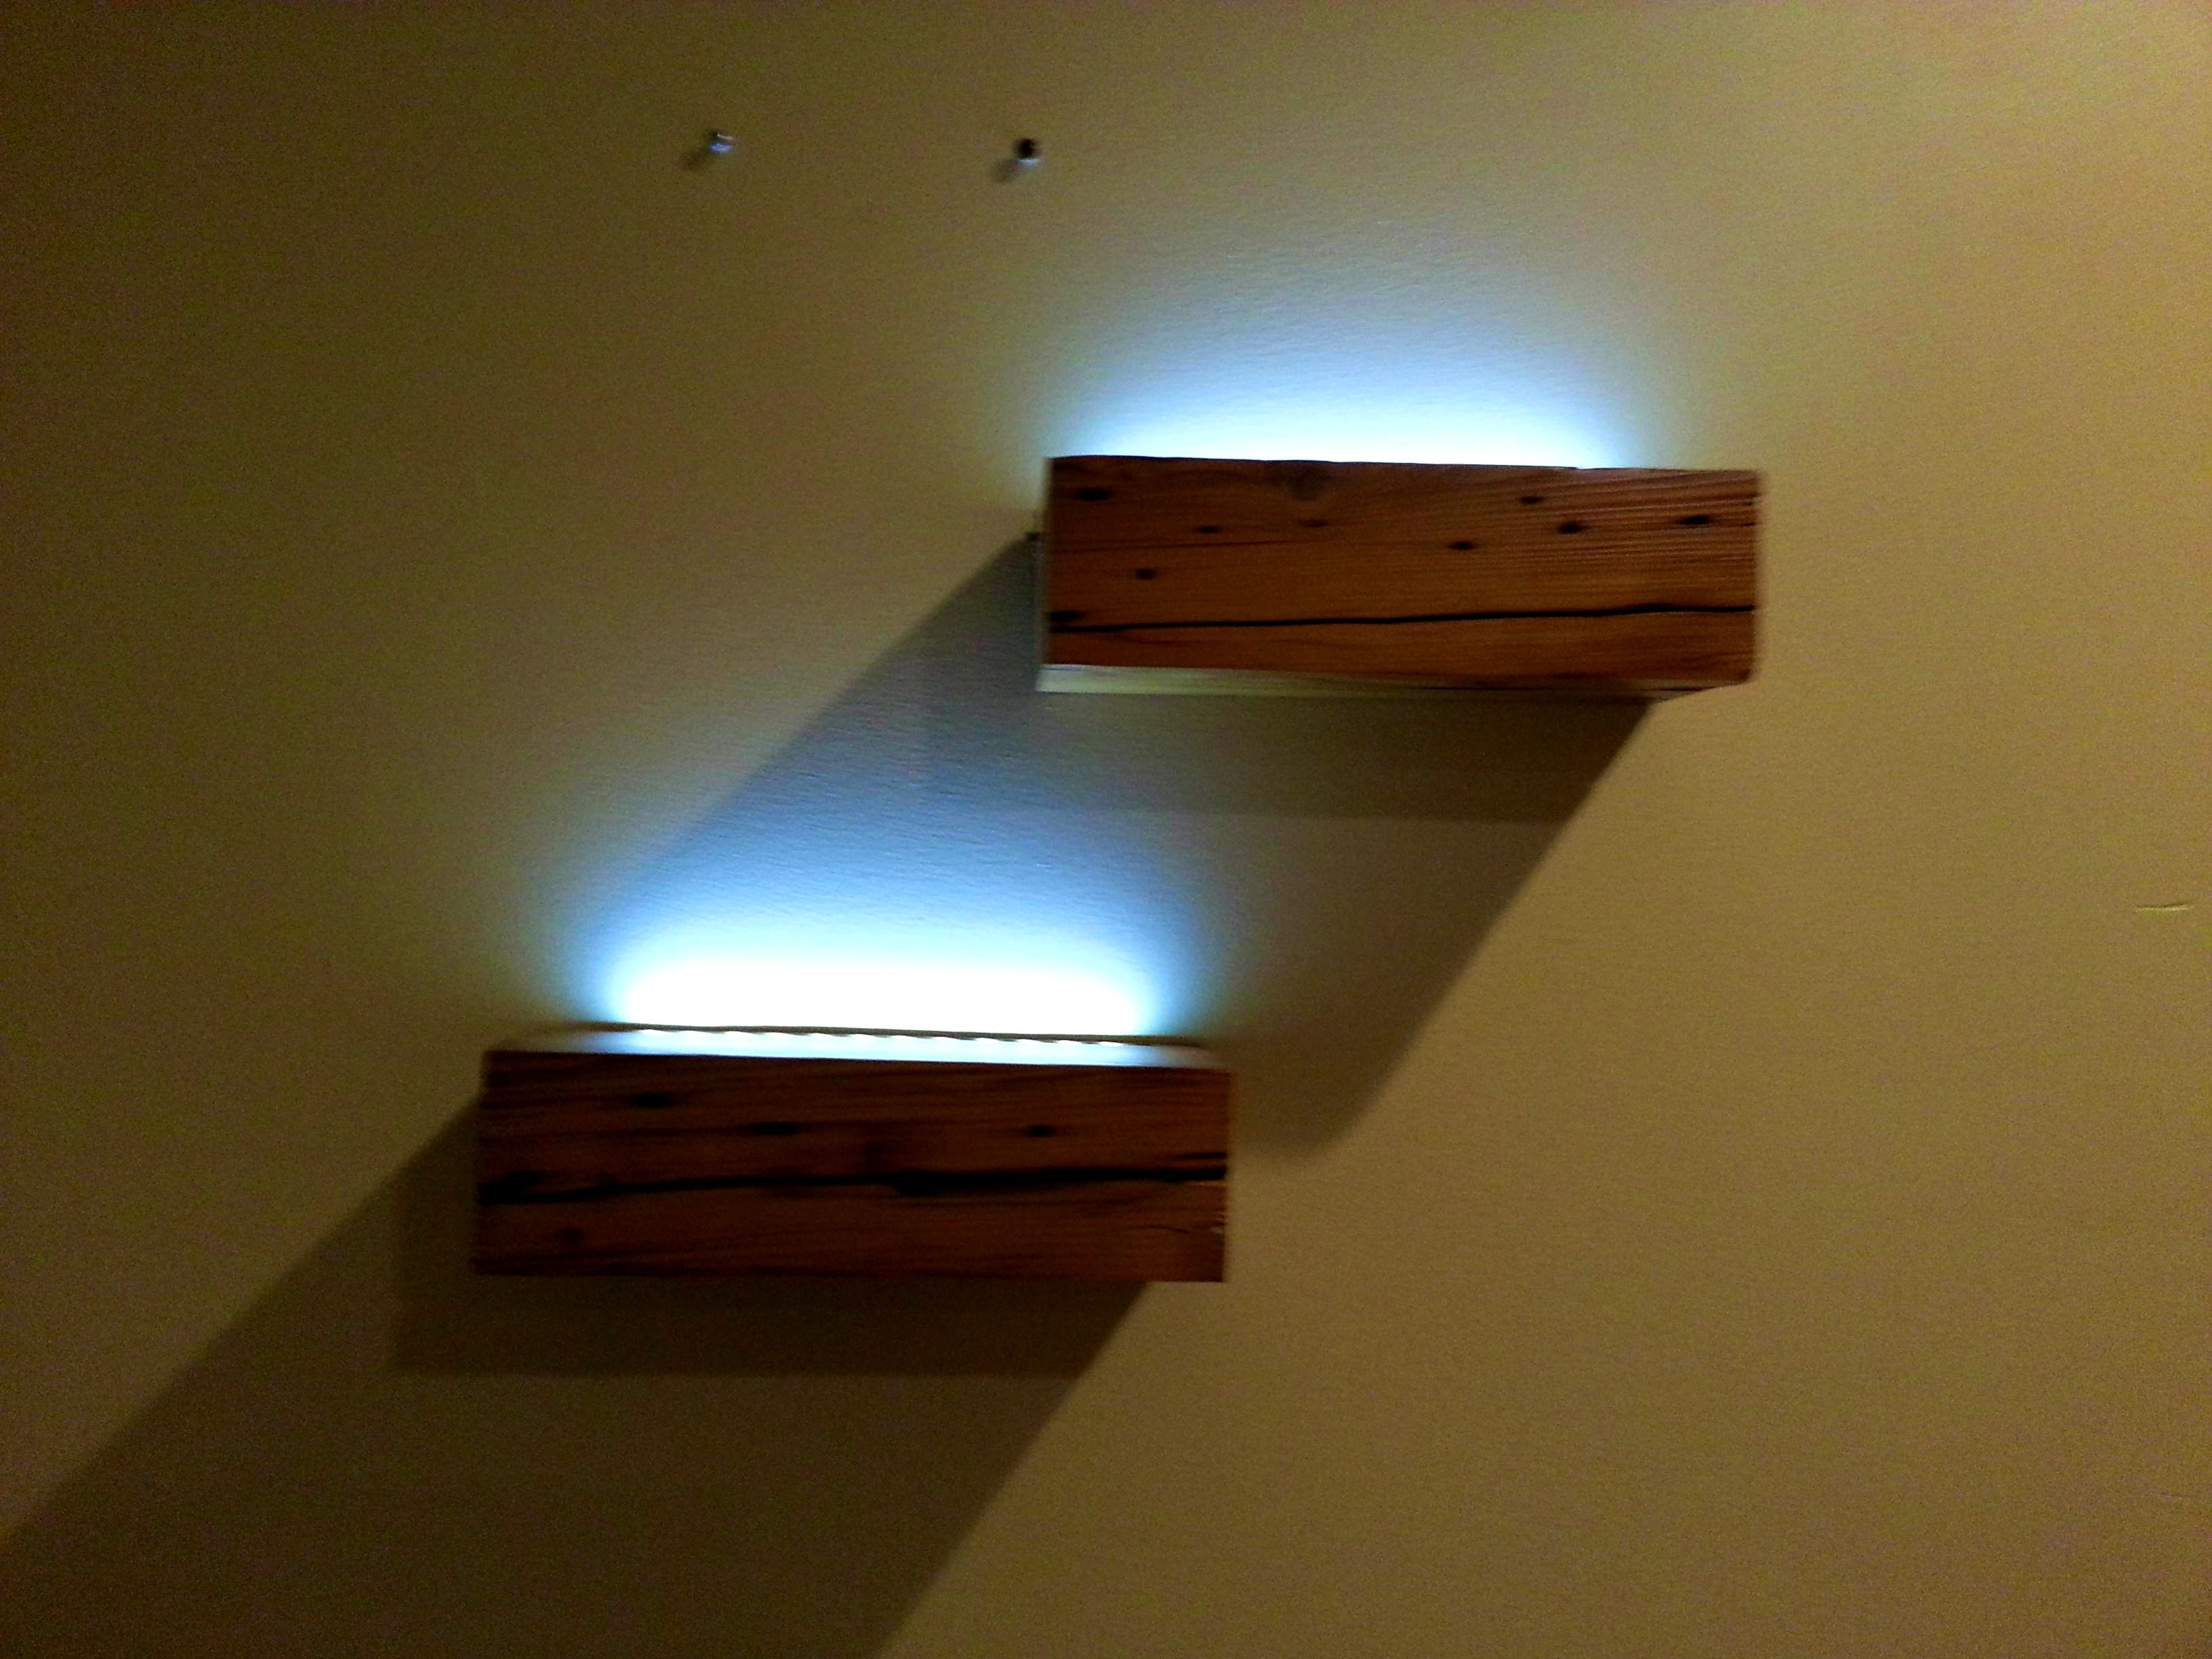 bathroom comely floating battery powered led shelves from wall with lights underneath reclaimed knotty pine building commercial ikea oak bar large glass mantel inch metal shelf